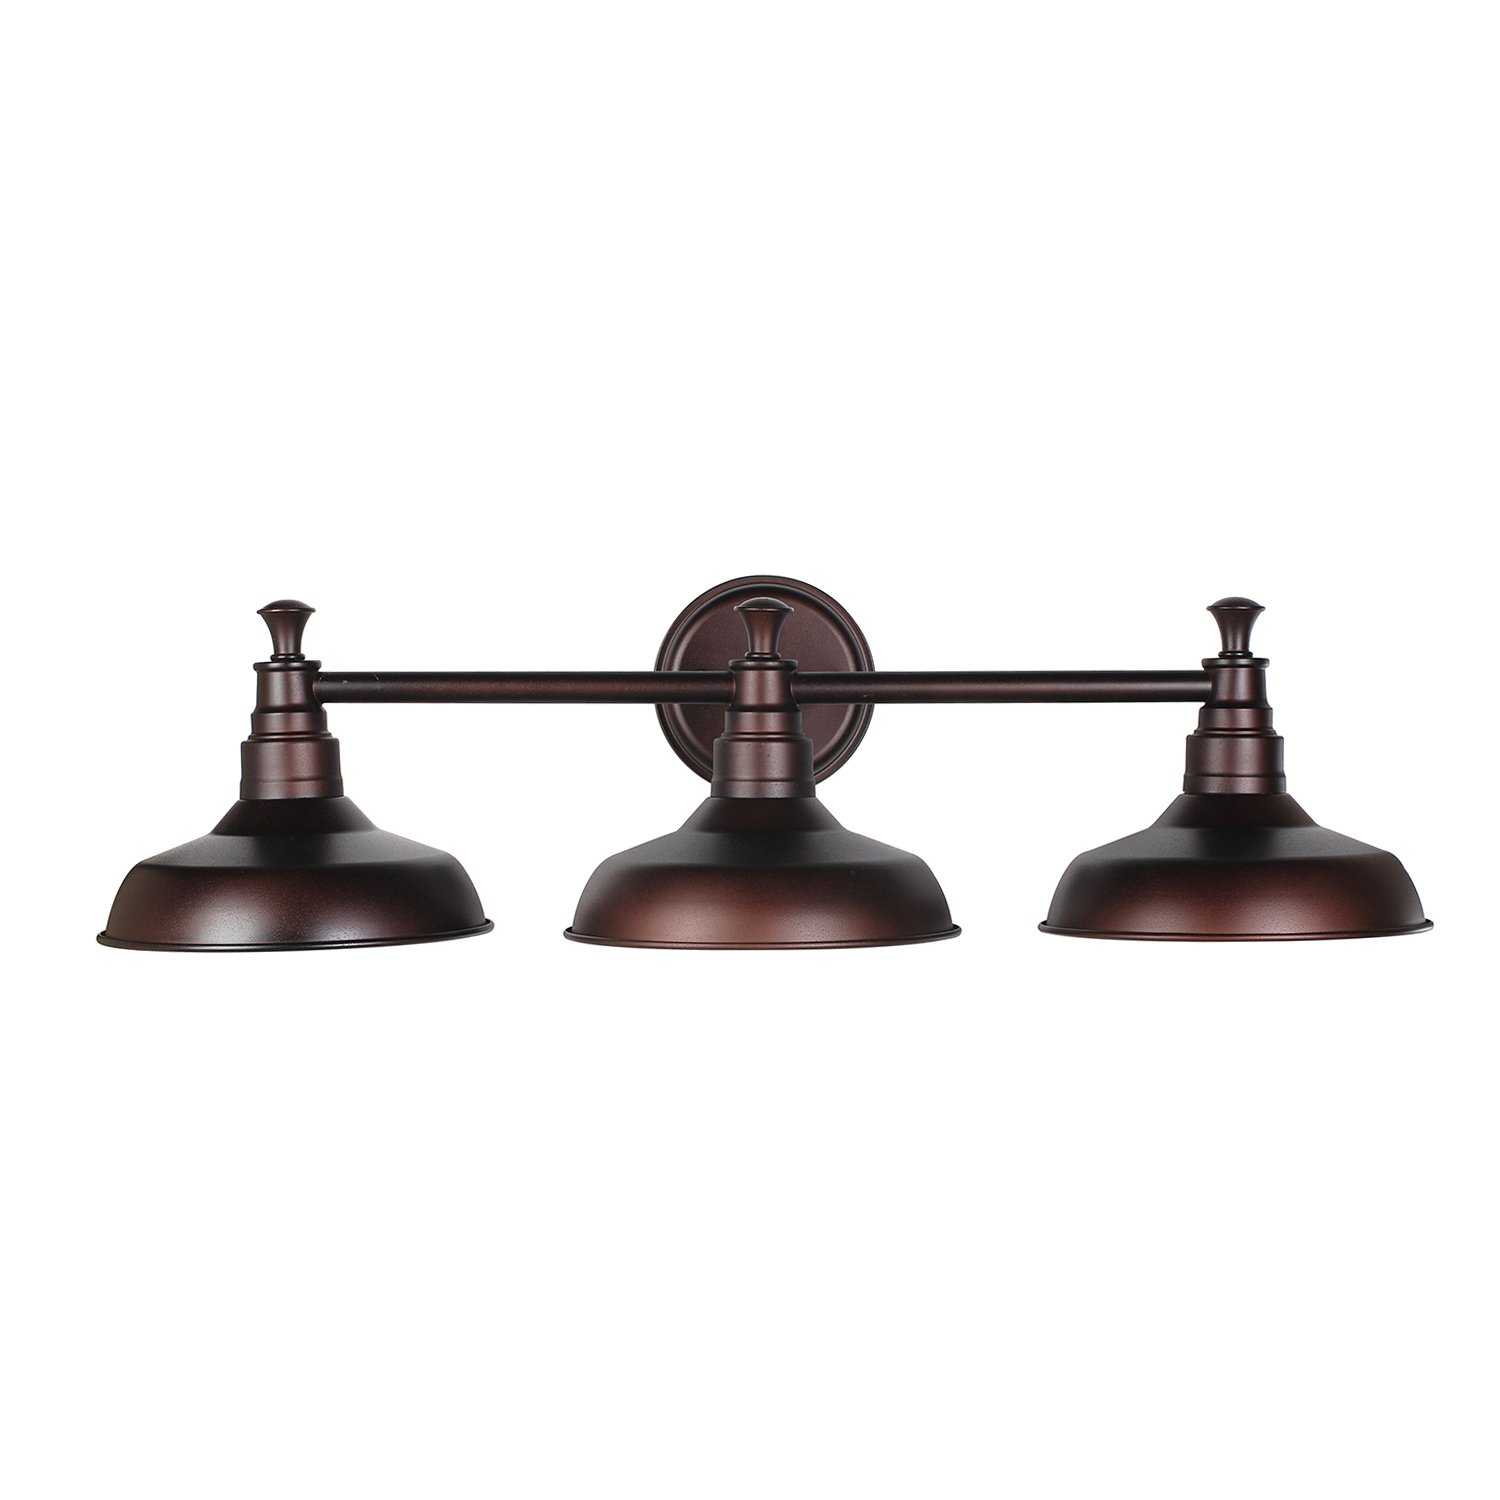 Design House 520320 Kimball 3 Light Vanity Light, Bronze by Design House